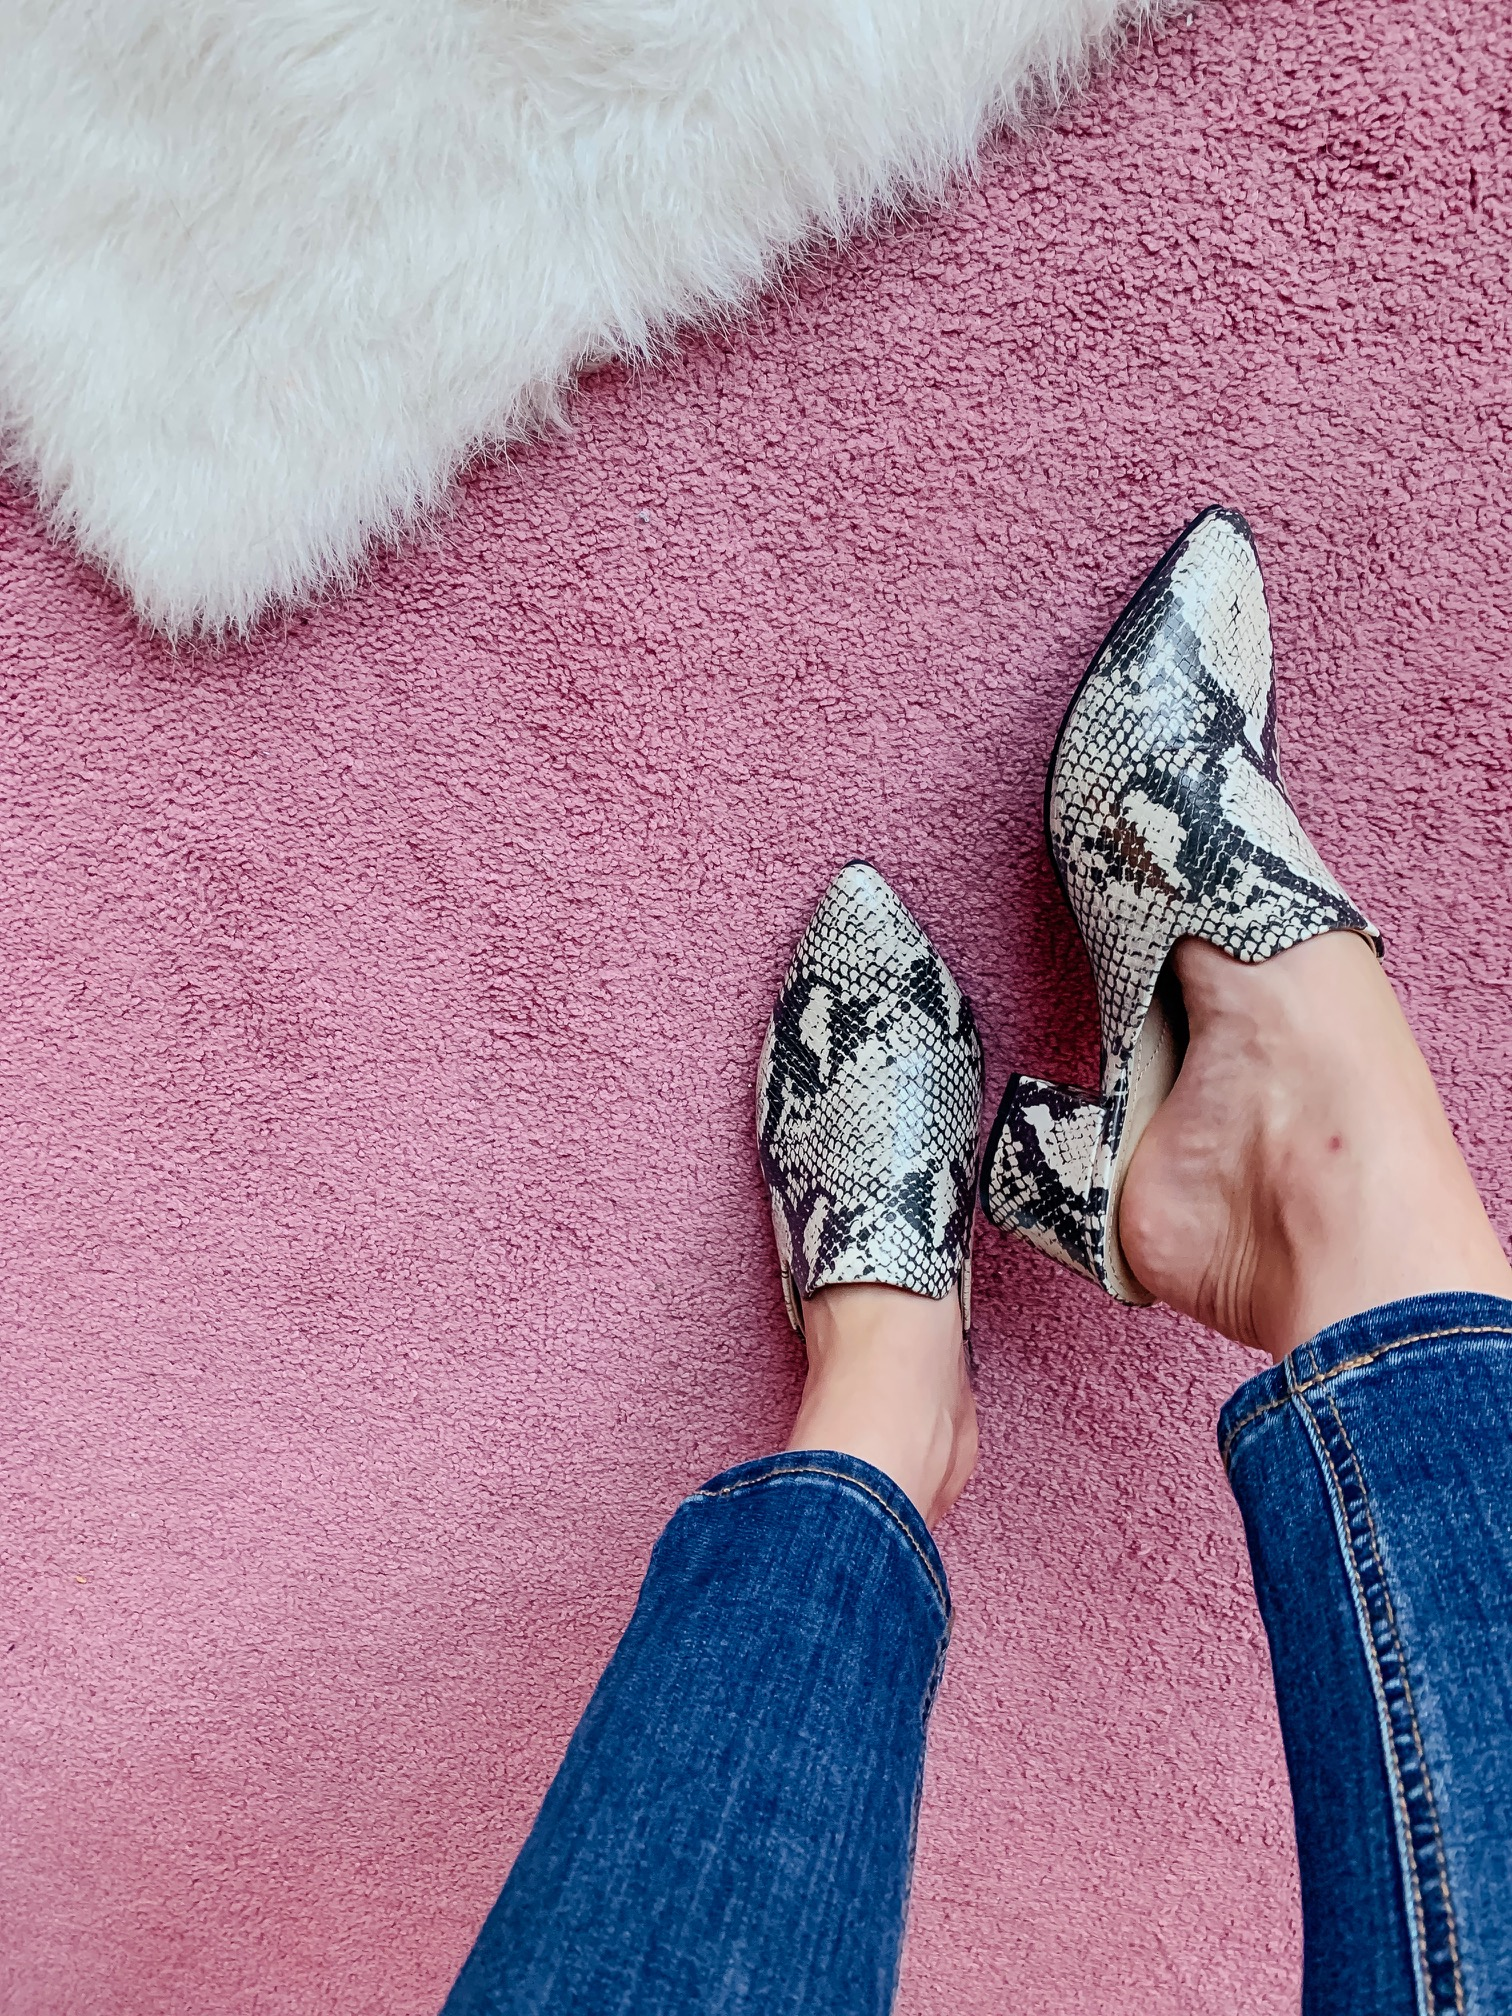 WALMART FALL HAUL - Everything under $35!!! - snakeskin mules on Coming Up Roses